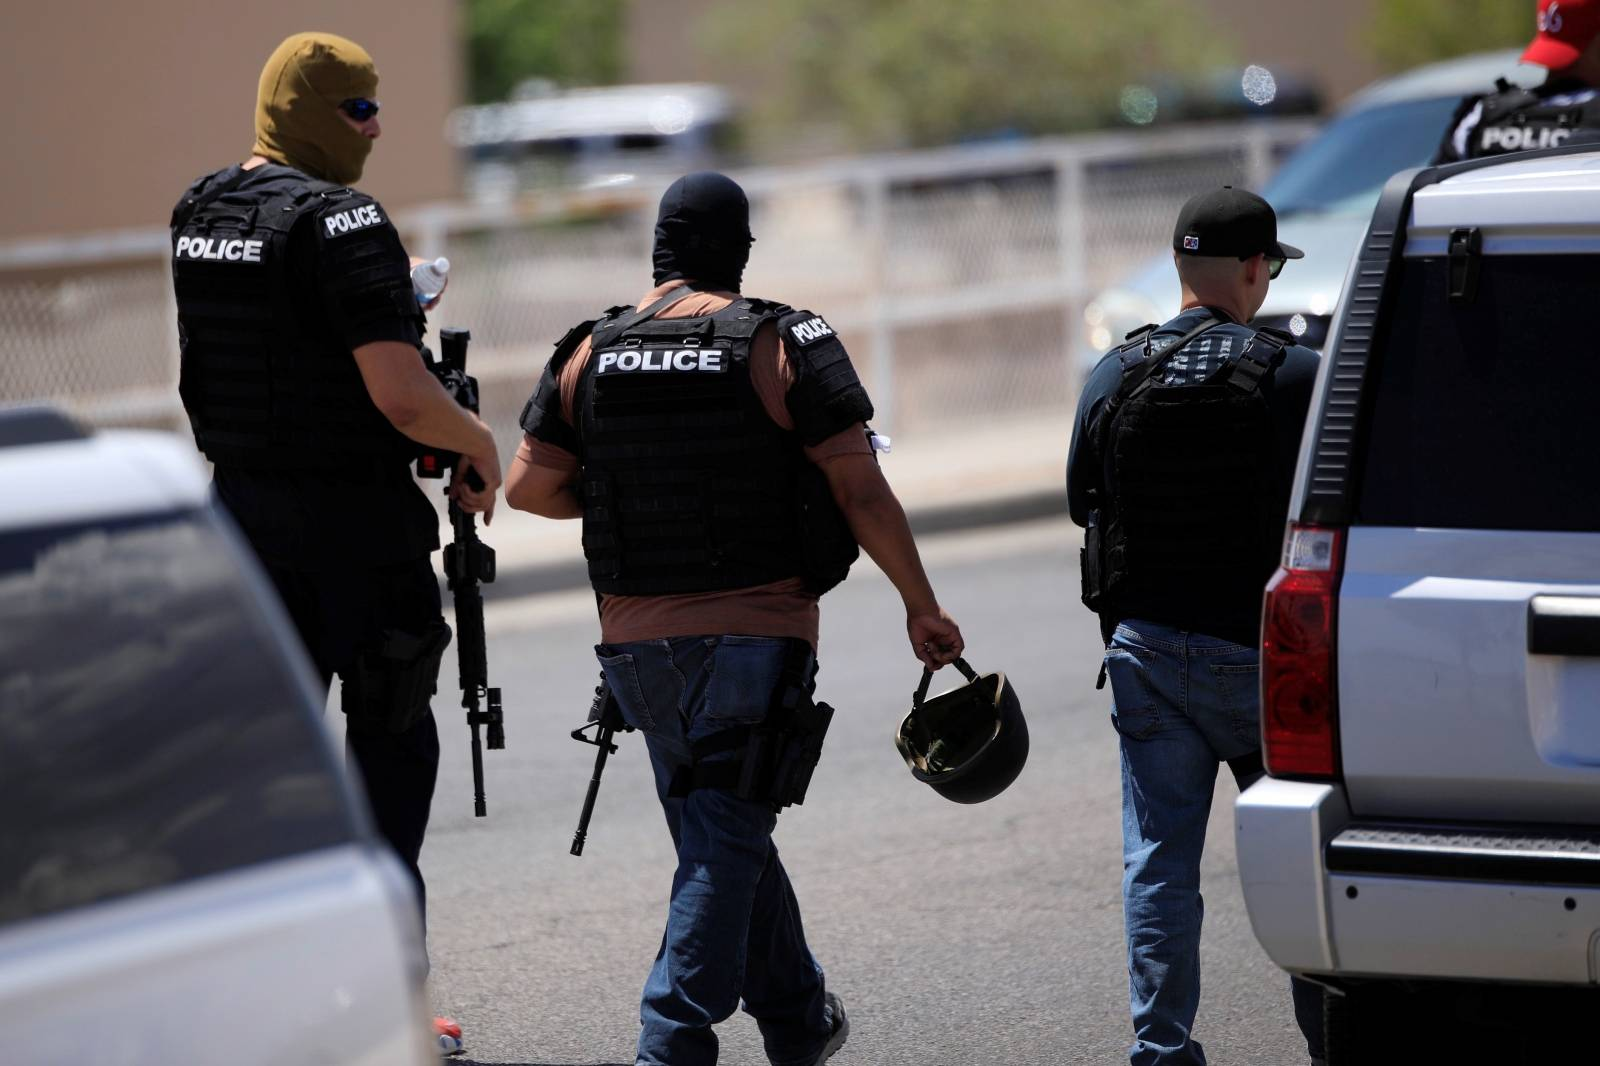 Police arrive after a mass shooting at a Walmart in El Paso